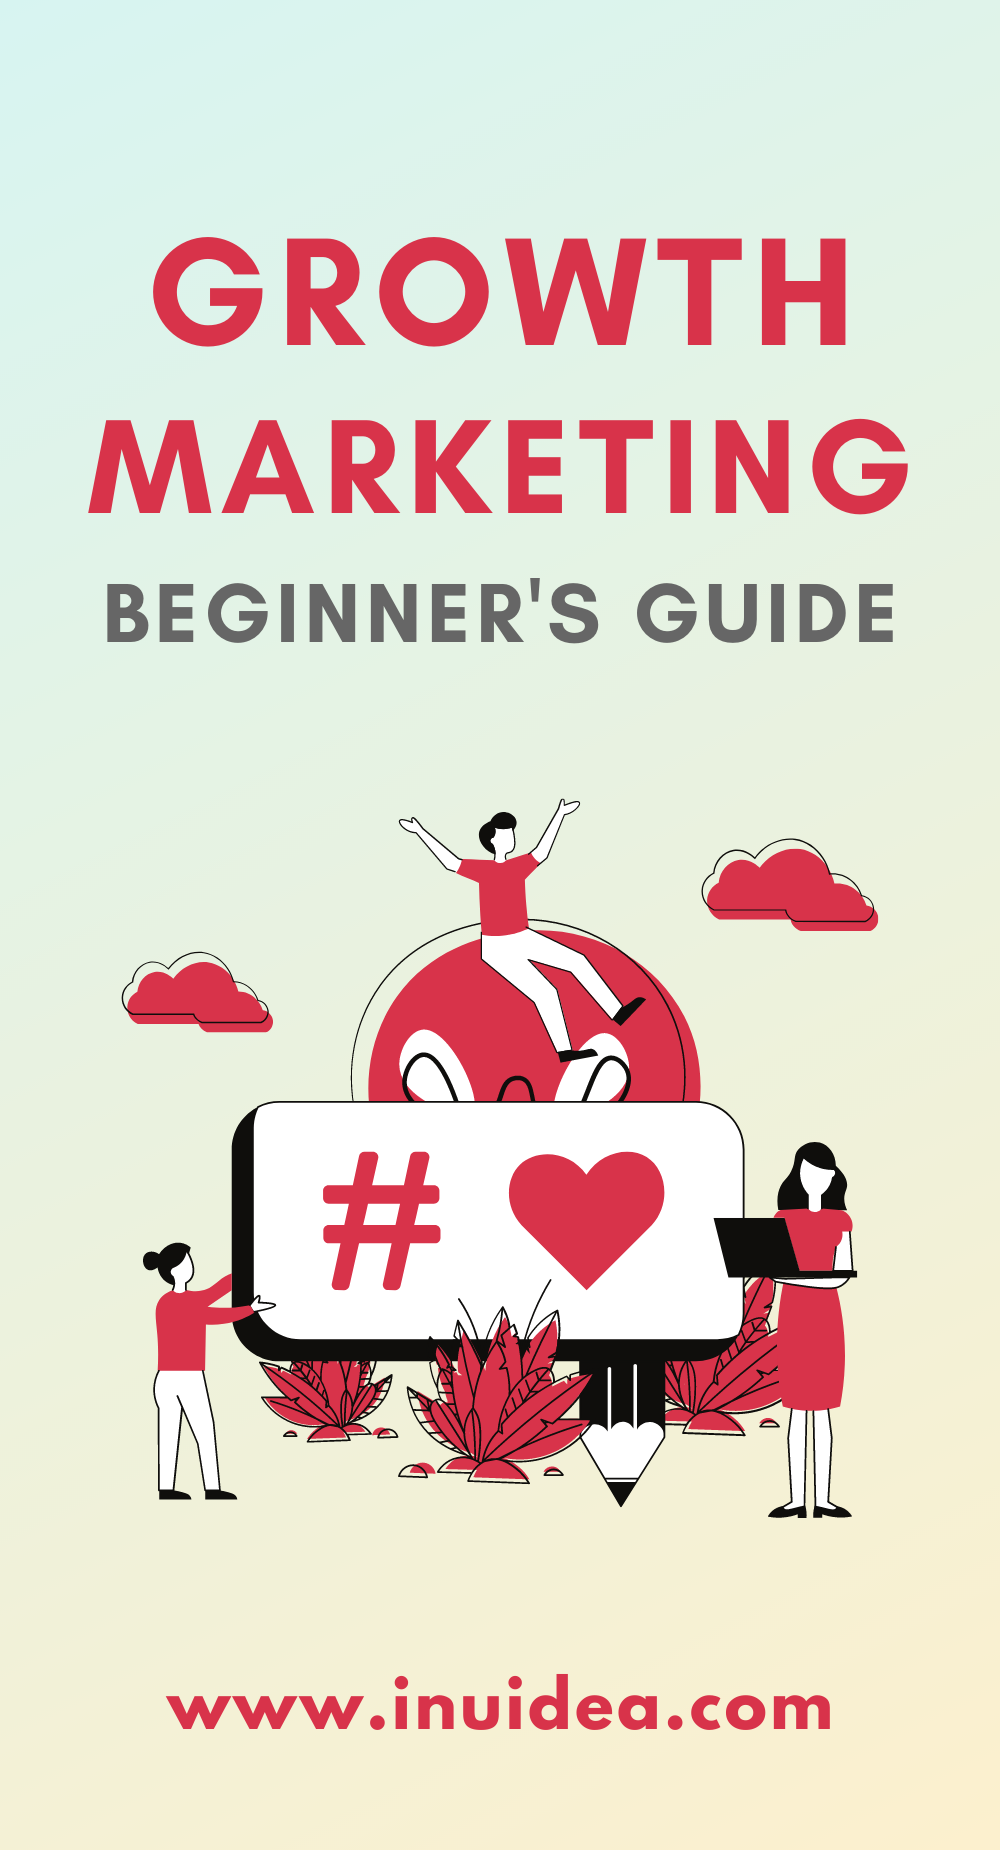 Growth Marketing - Beginner Guide